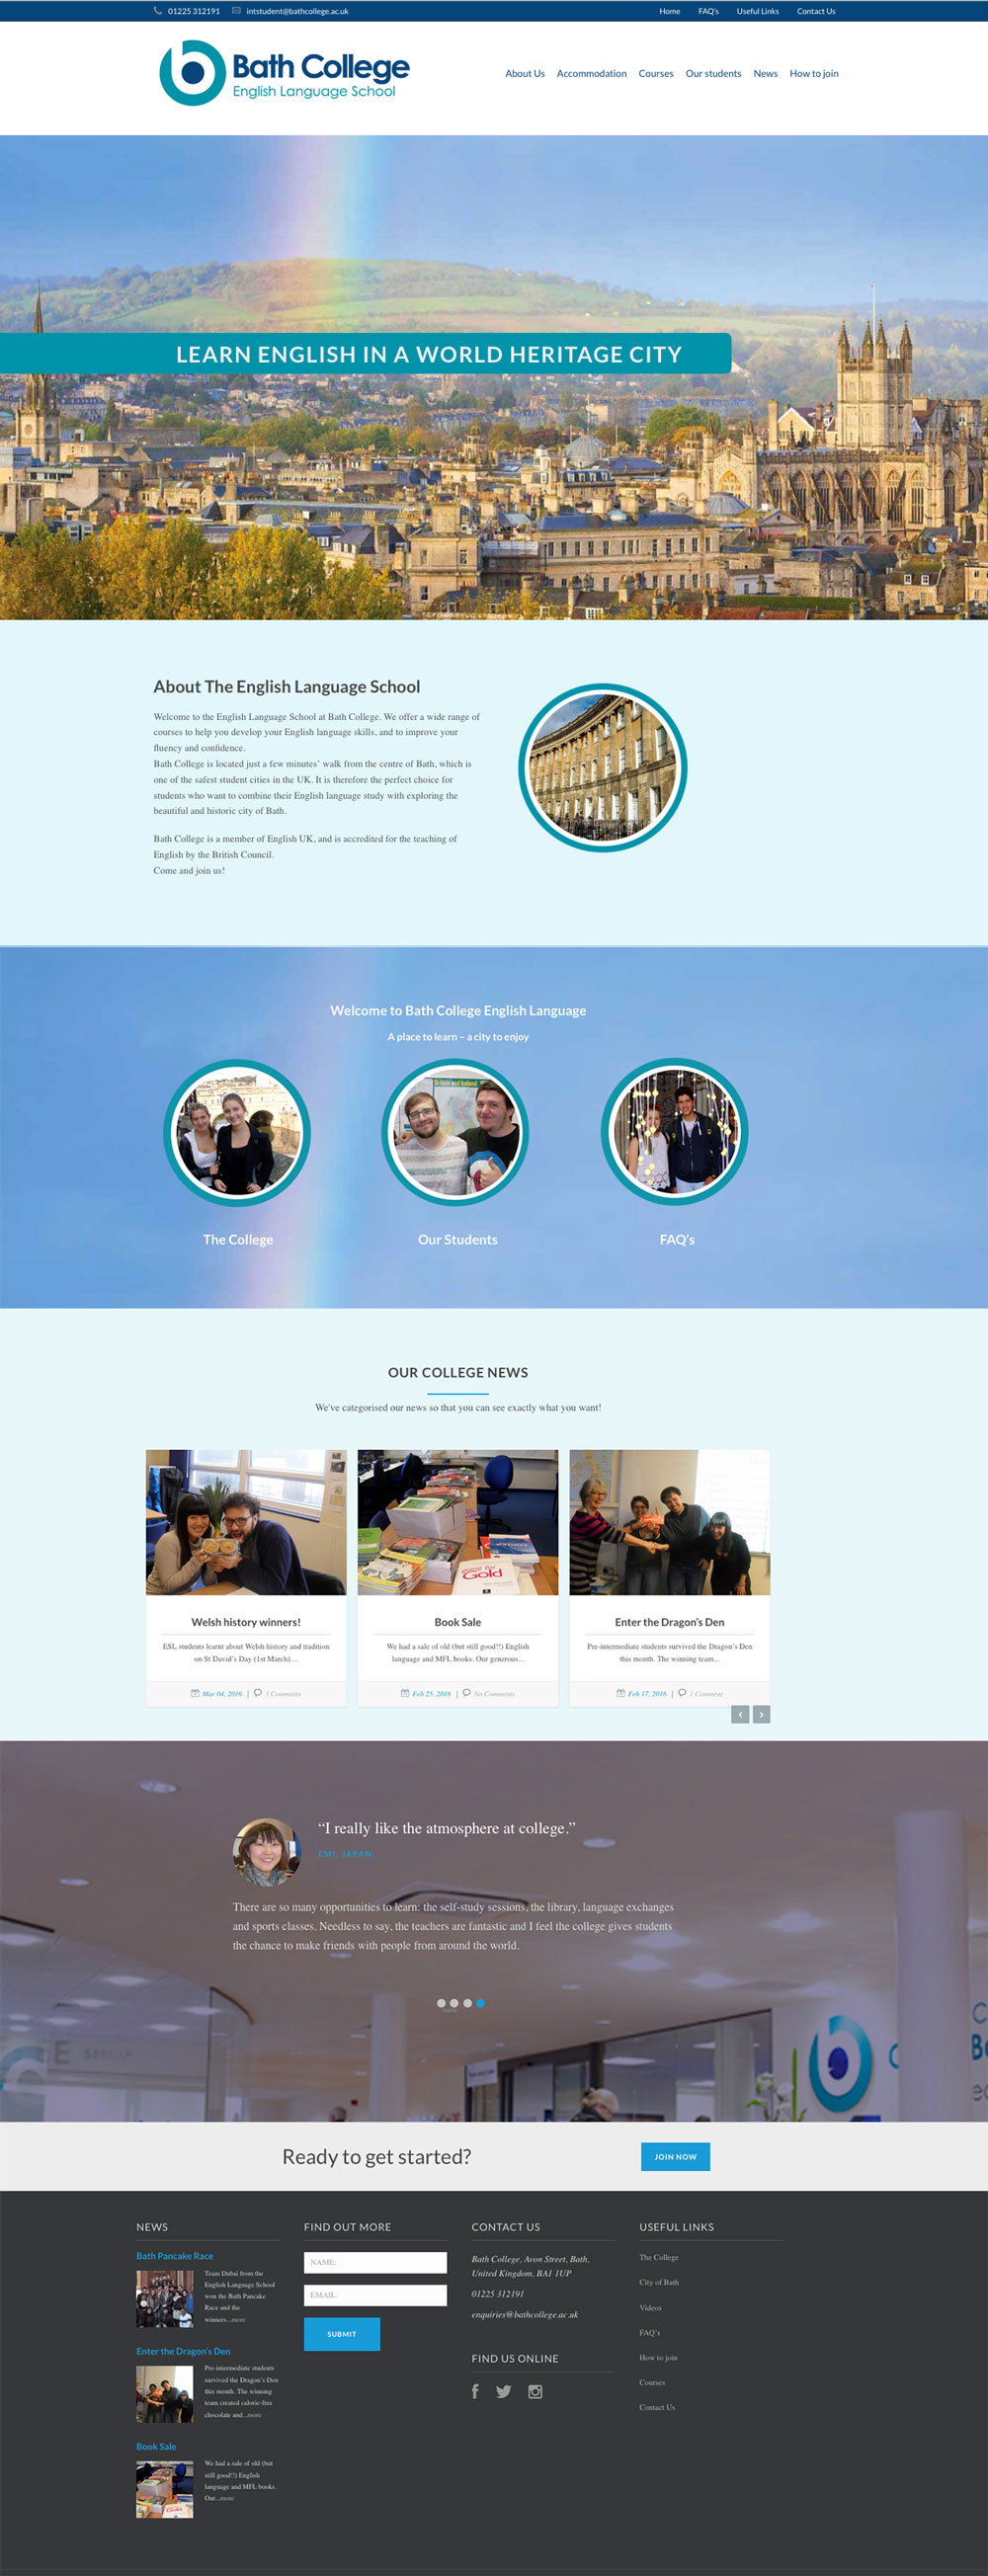 Marketing Consultancy & Website Design for Bath College